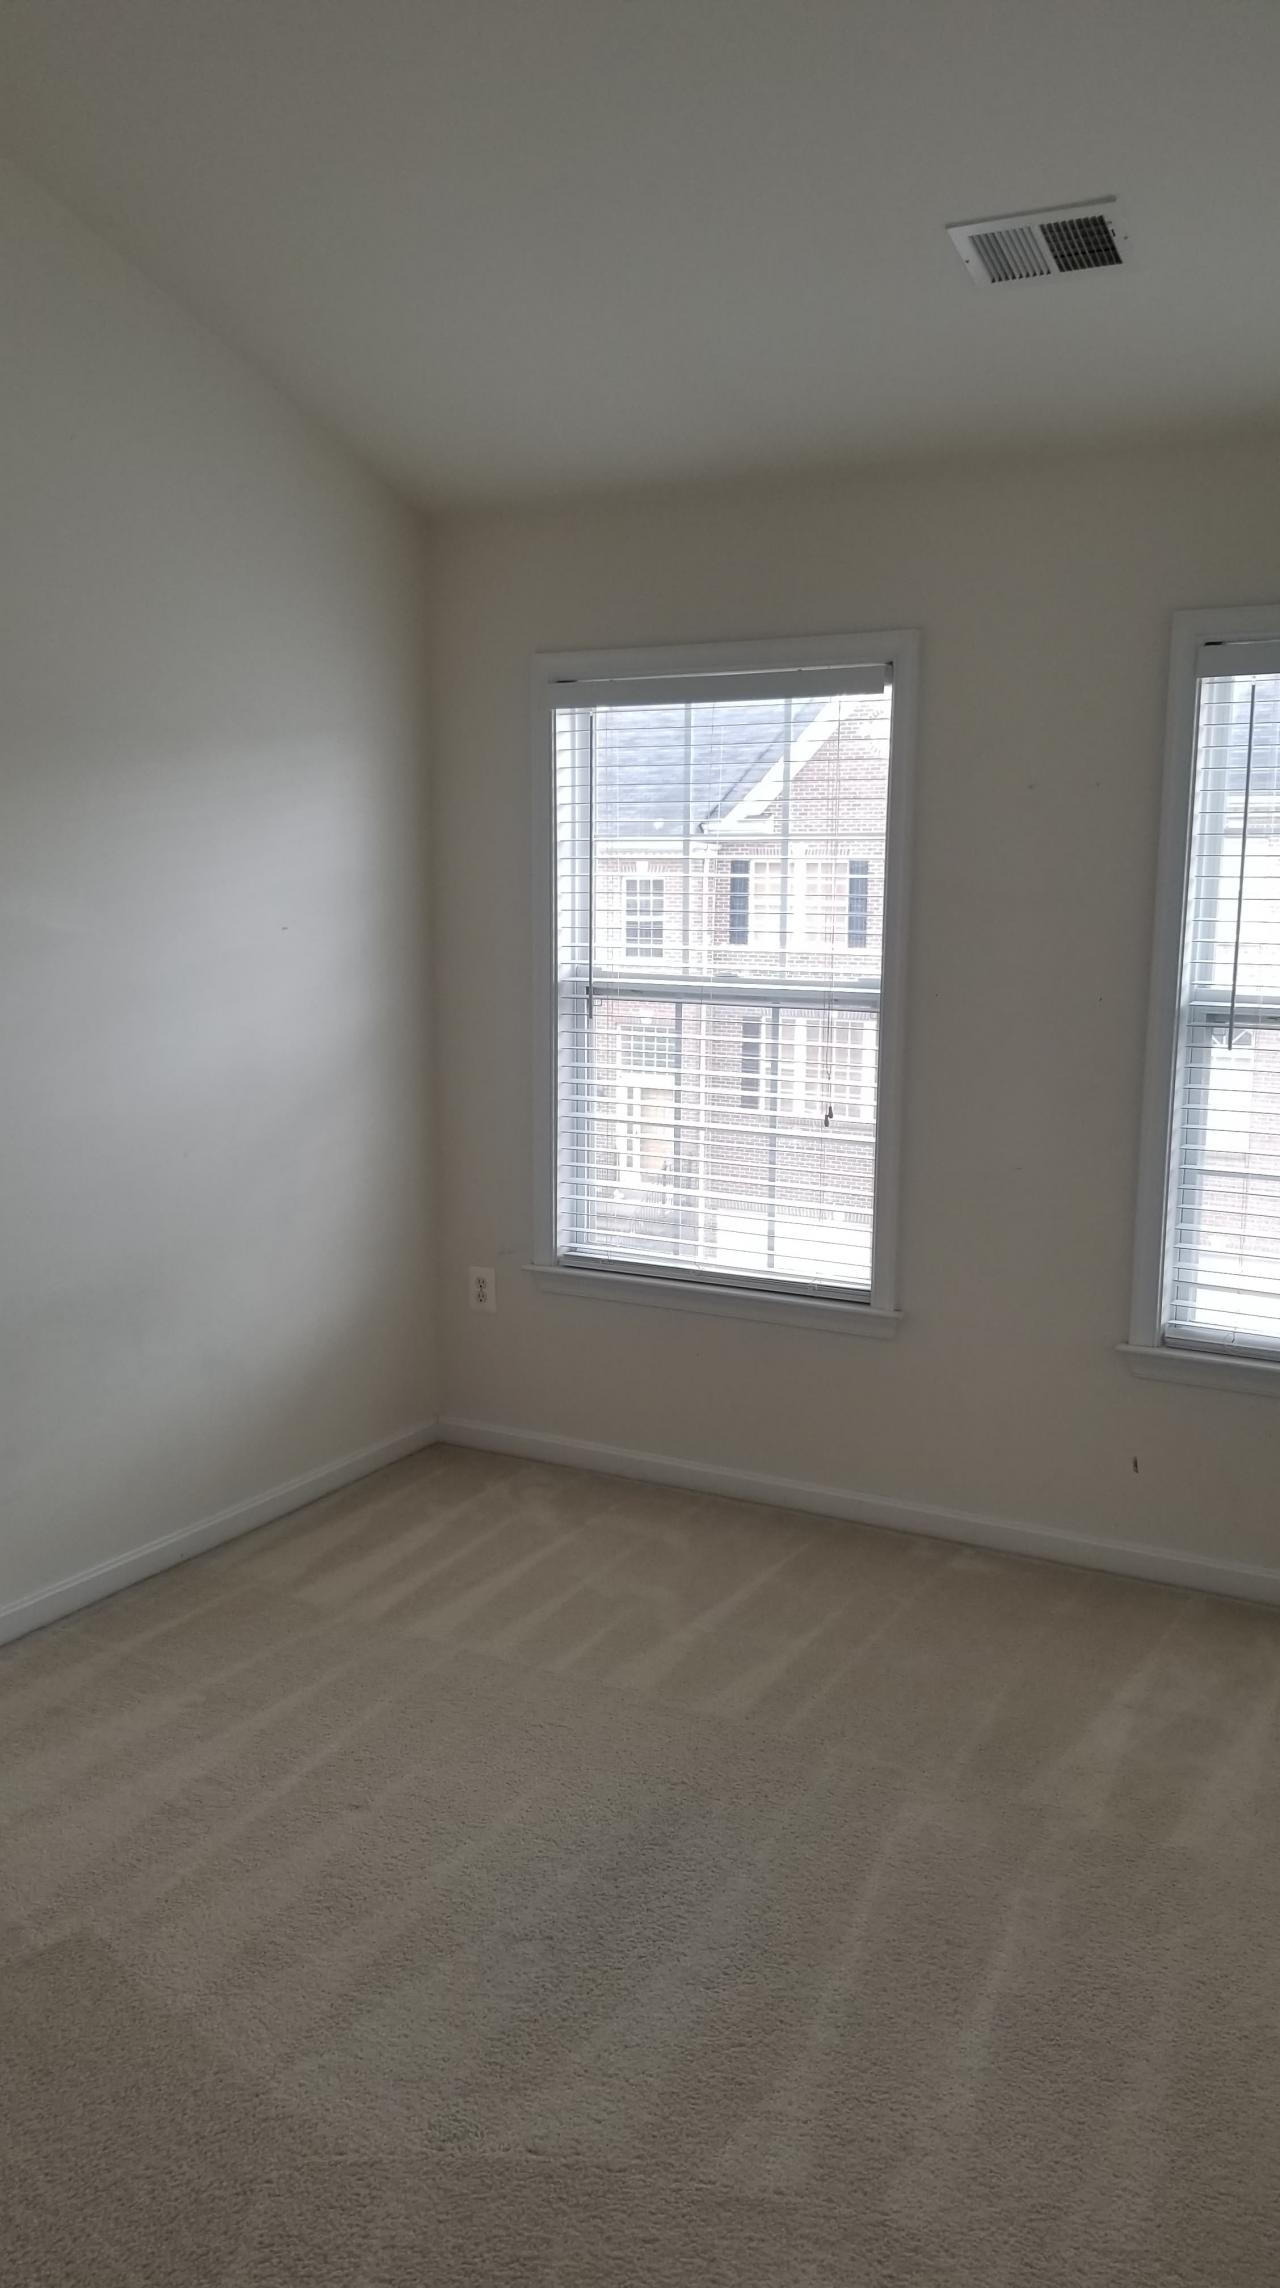 2 LARGE BEDROOMS W/ VAULTED CEILINGS